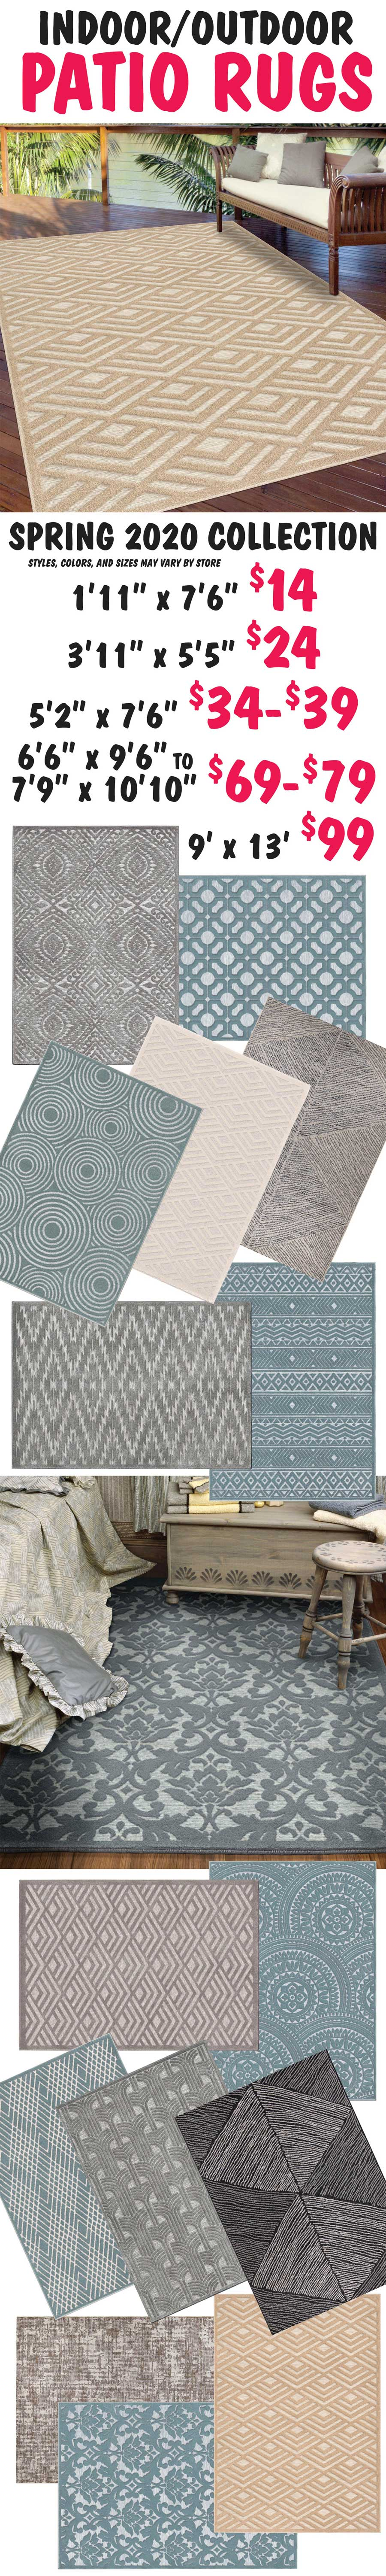 Indoor Outdoor Patio Rugs starting at $14